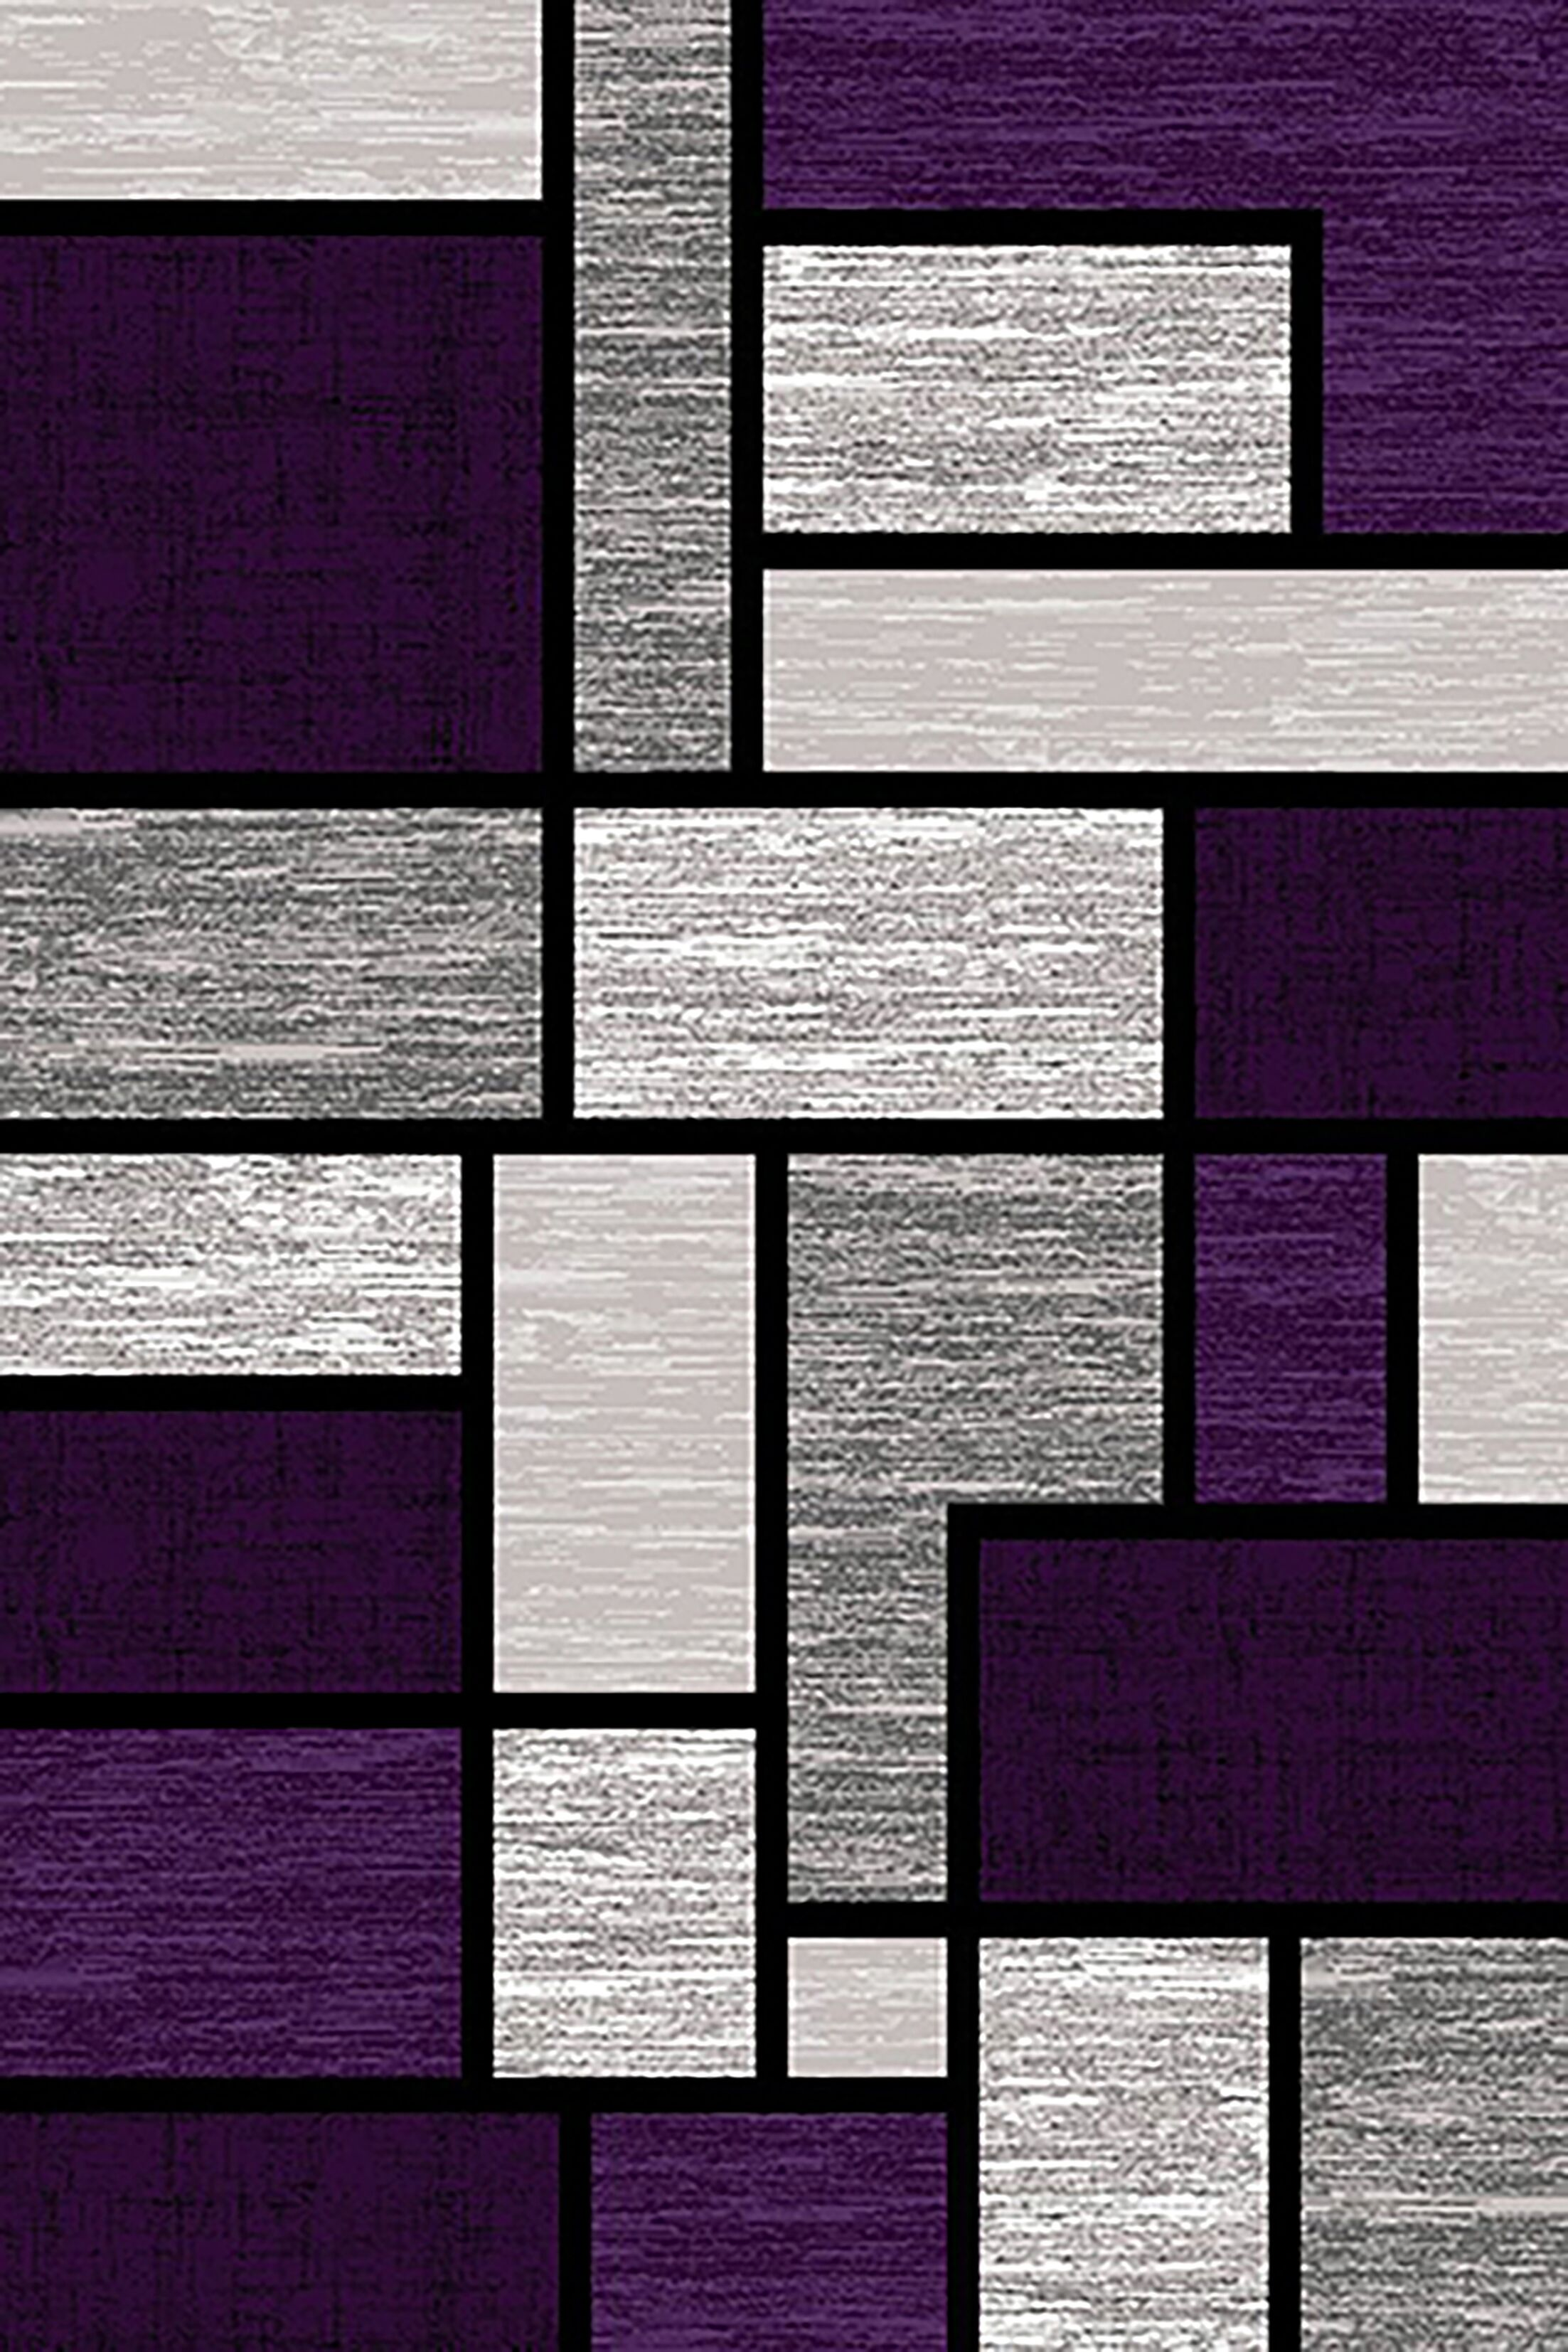 Mccampbell Purple/Gray Area Rug Rug Size: Rectangle 5' x 7'